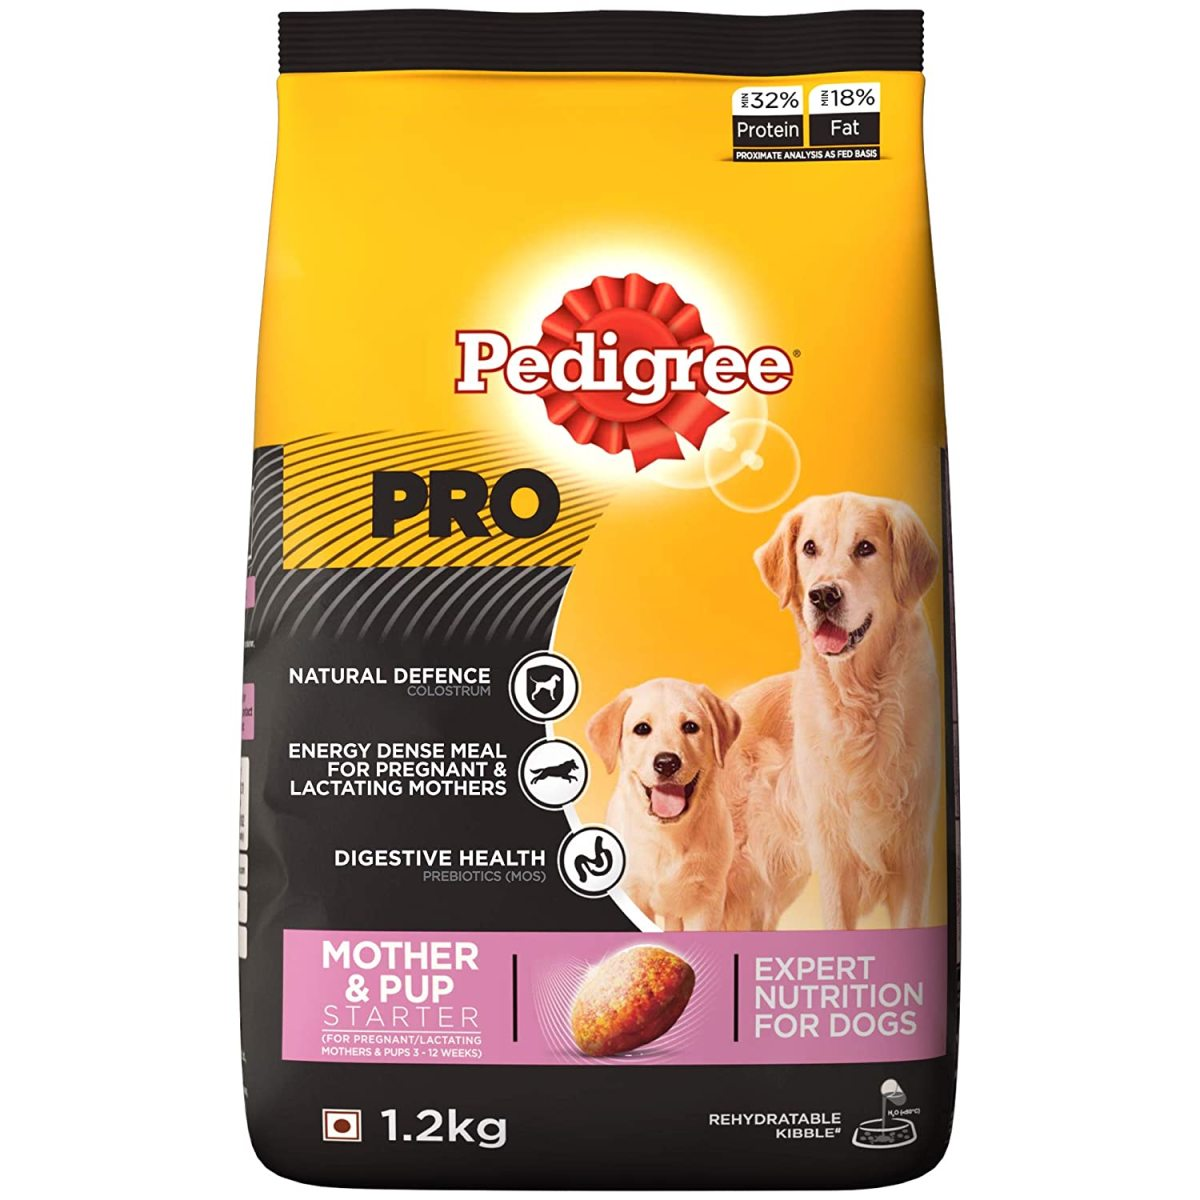 I started with this Dog Food (Vet recommendation) and my puppies also liked it. It contains essential nutrients that strengthens immunity and digestive system in delicate new pups and maximize the growth potential. But it had an unpleasant smell and